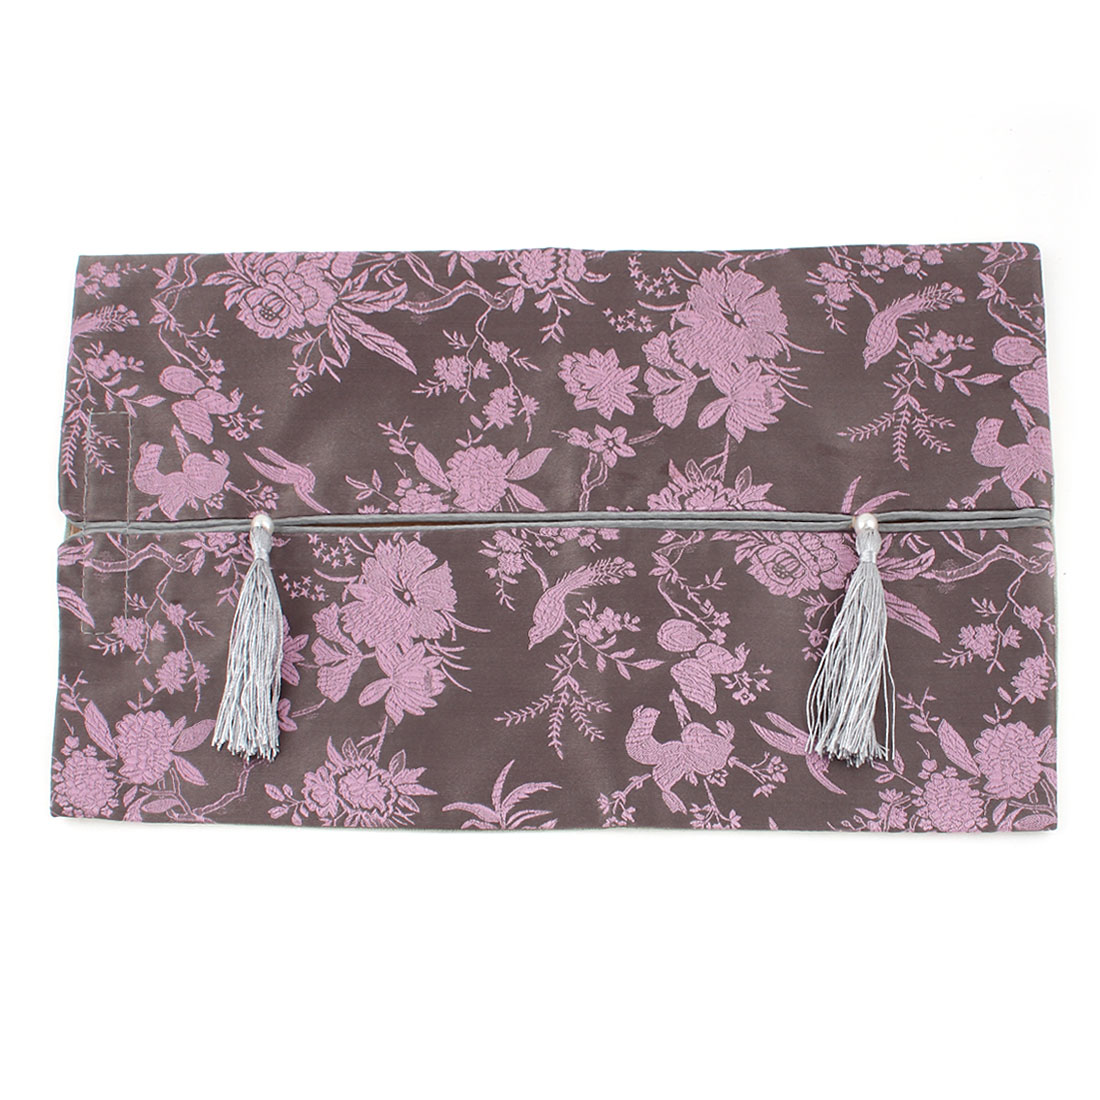 Rectangle Shape Embroidery Floral Pattern Tassel Decor Tissue Box Cover Pink